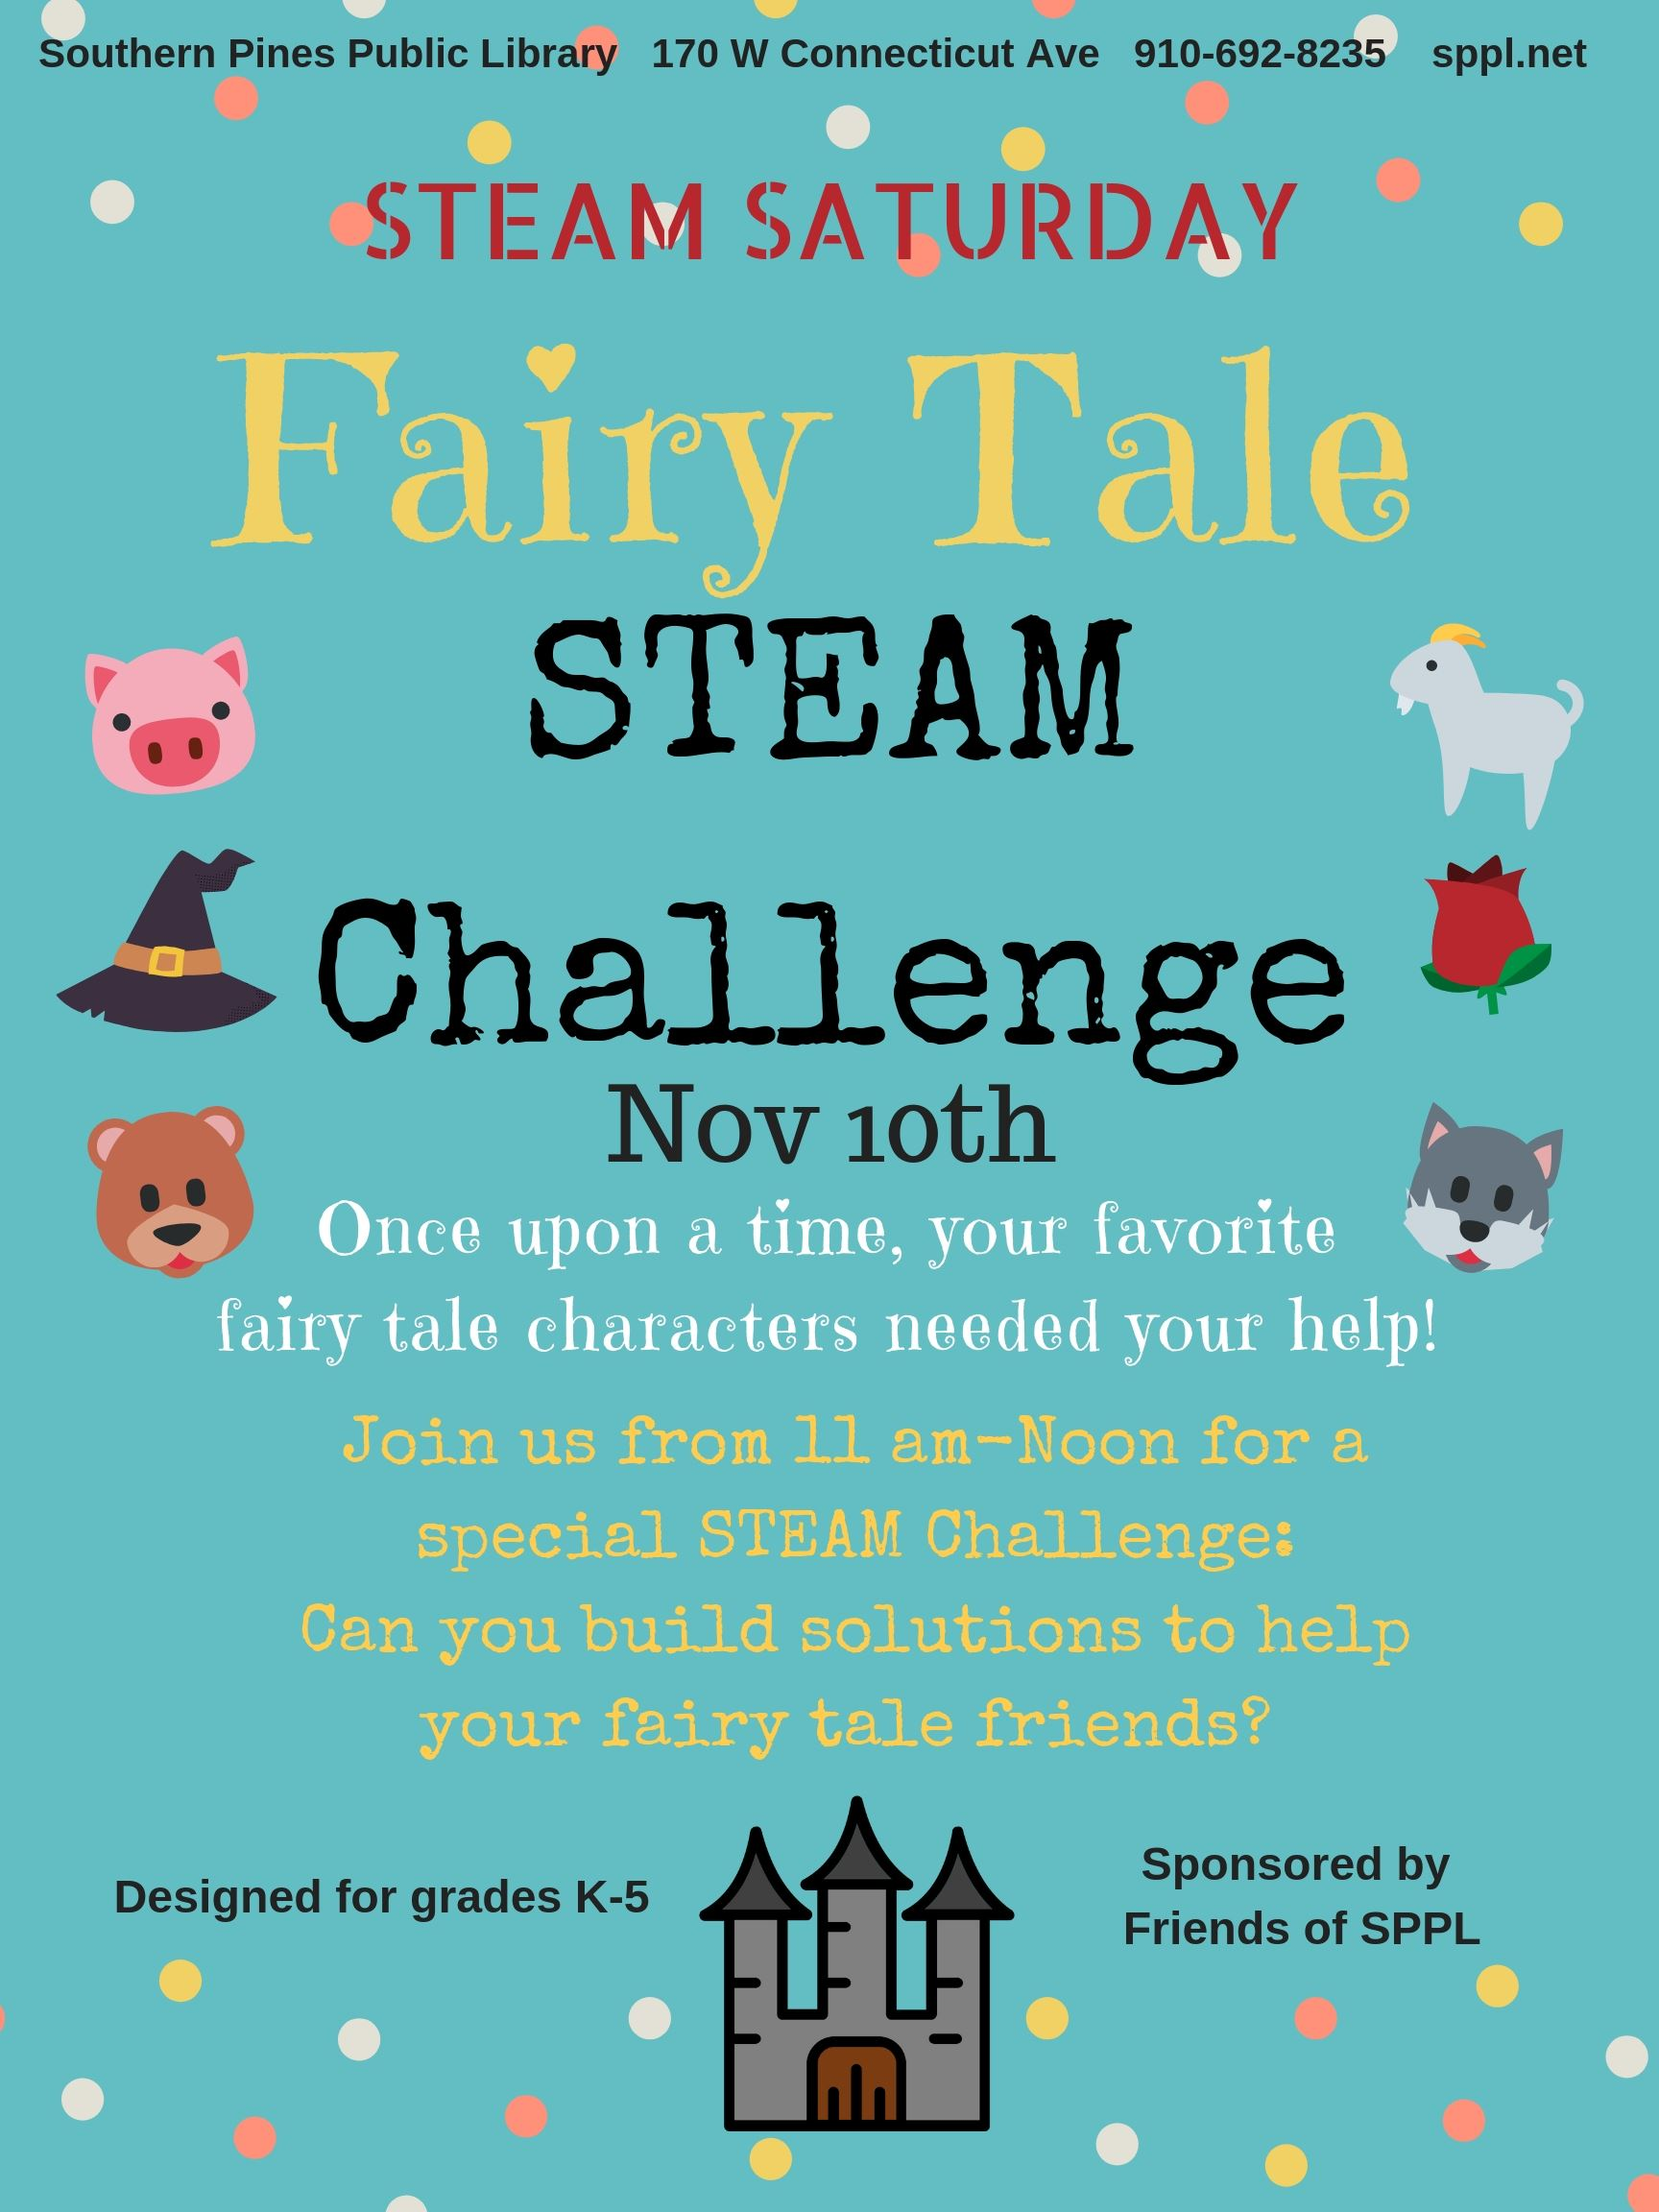 STEAM Sat- Fairy Tale Challenge